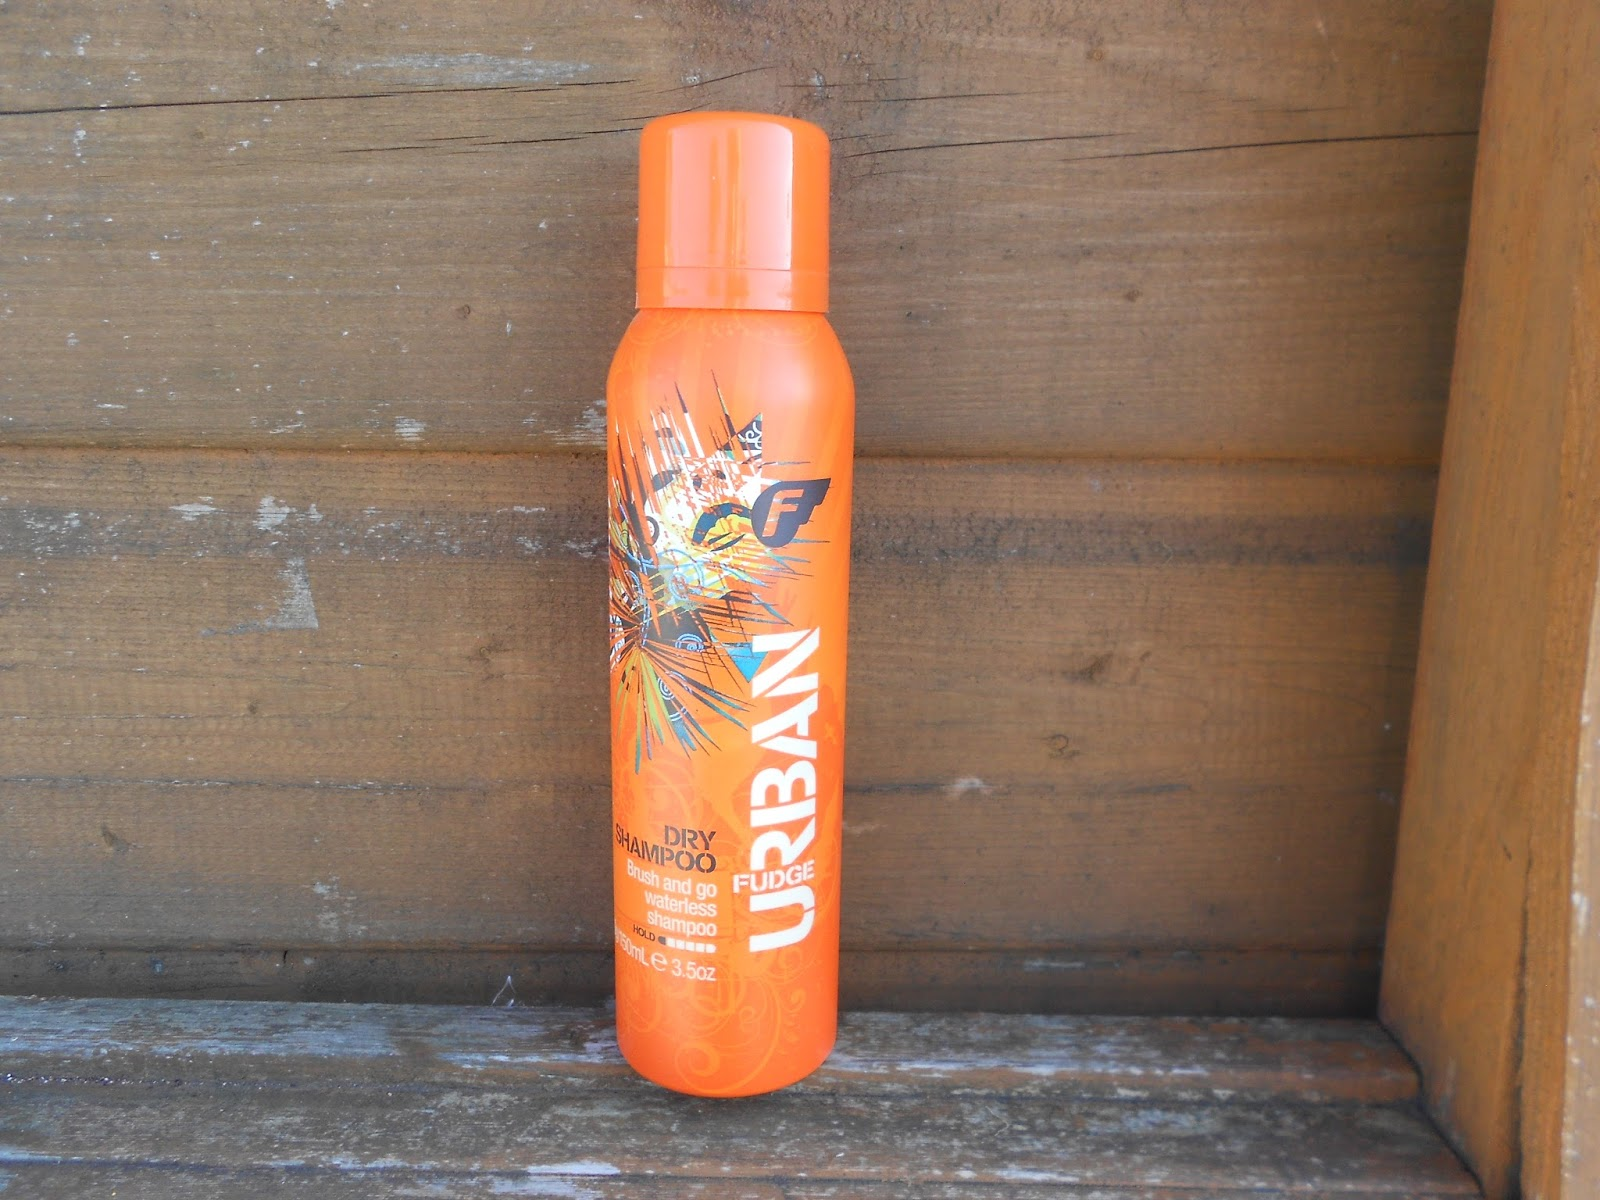 fudge urban blogger review dry shampoo